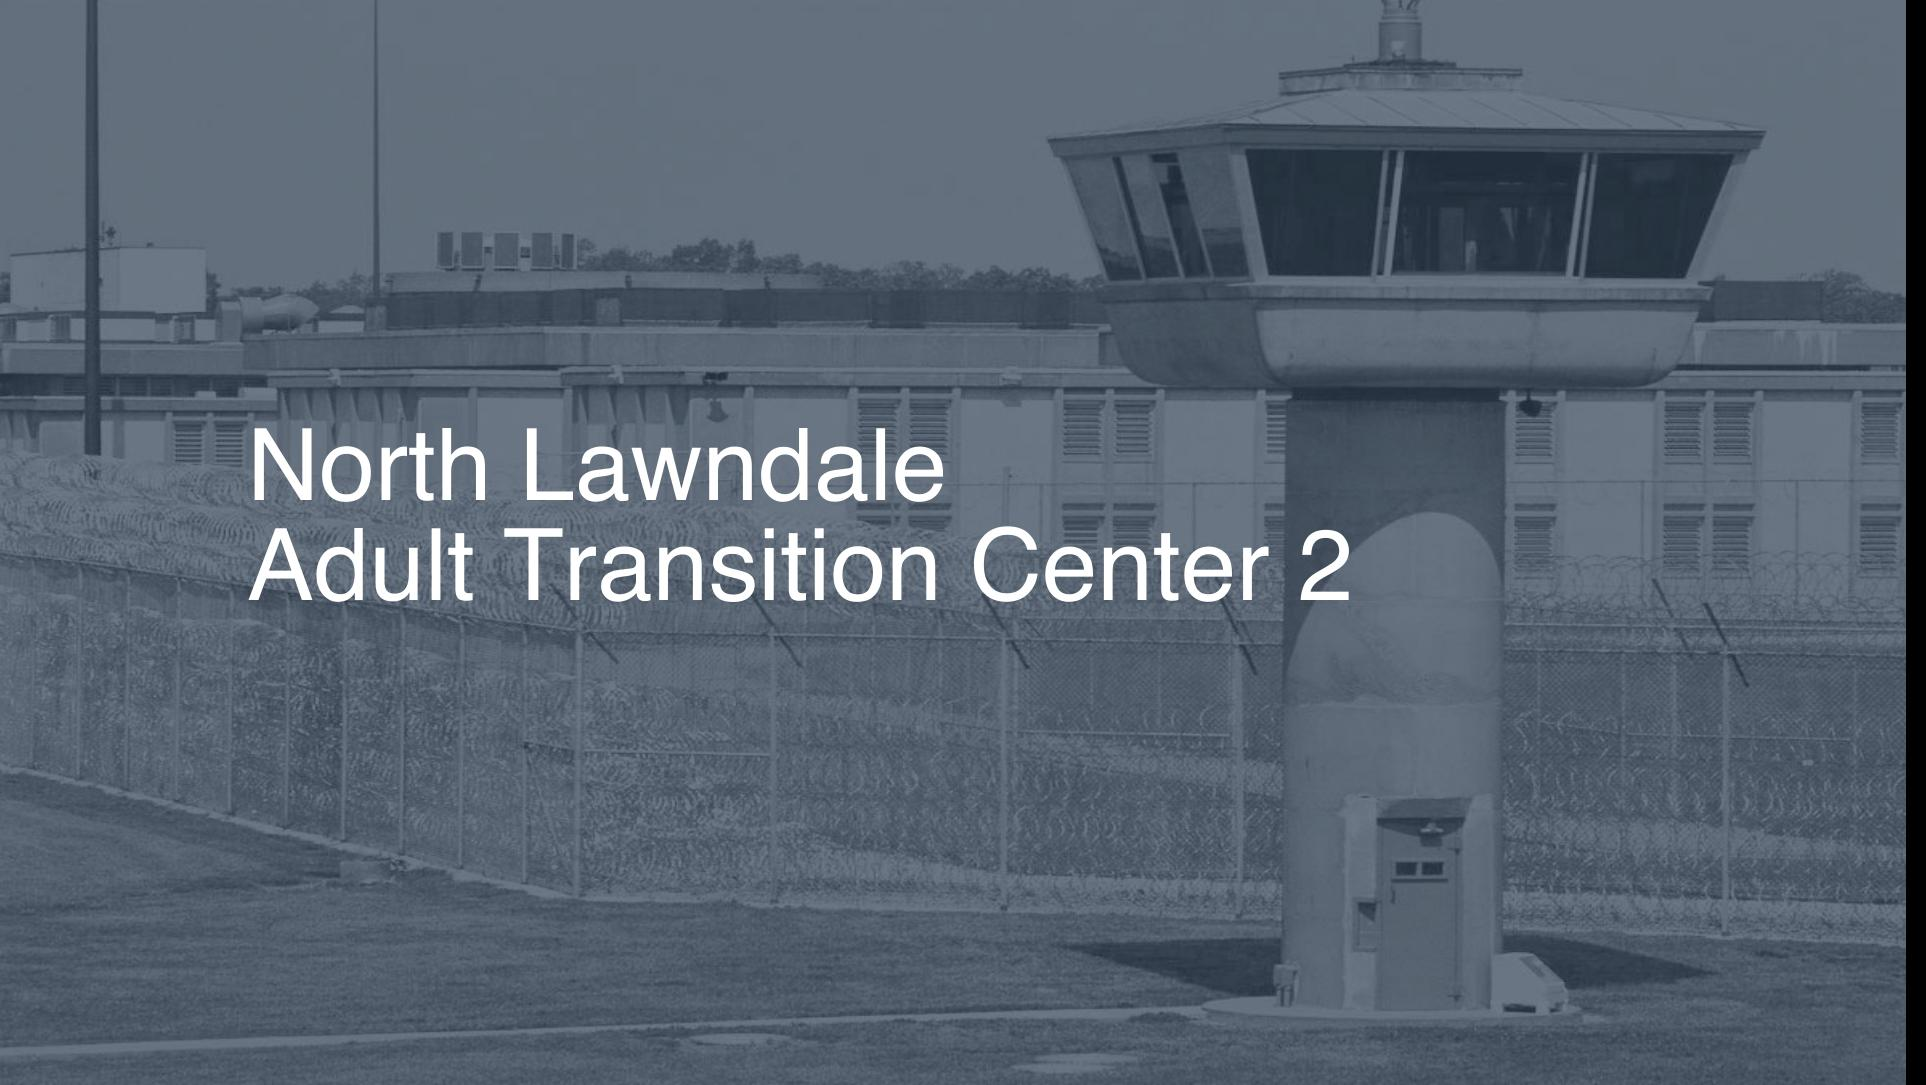 North Lawndale Adult Transition Center correctional facility picture